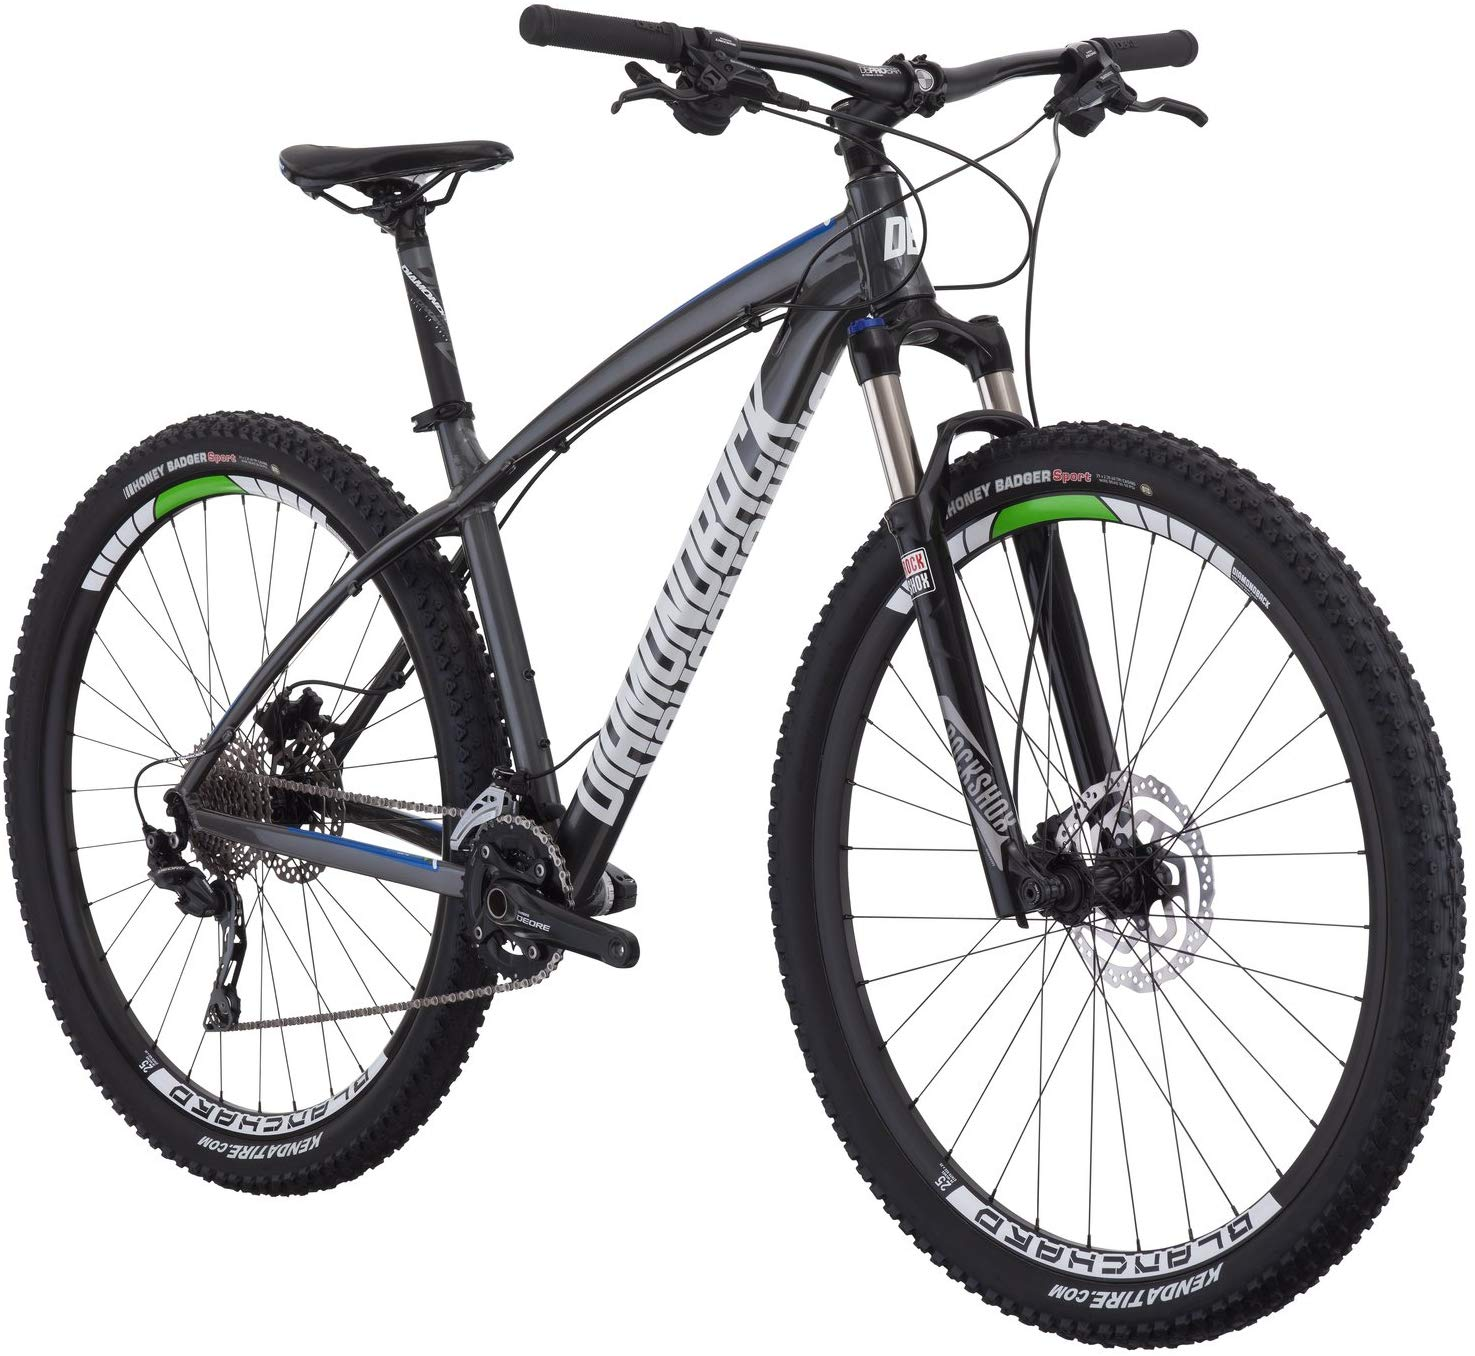 Diamondback Overdrive Complete 29ER Hardtail Mountain Bike